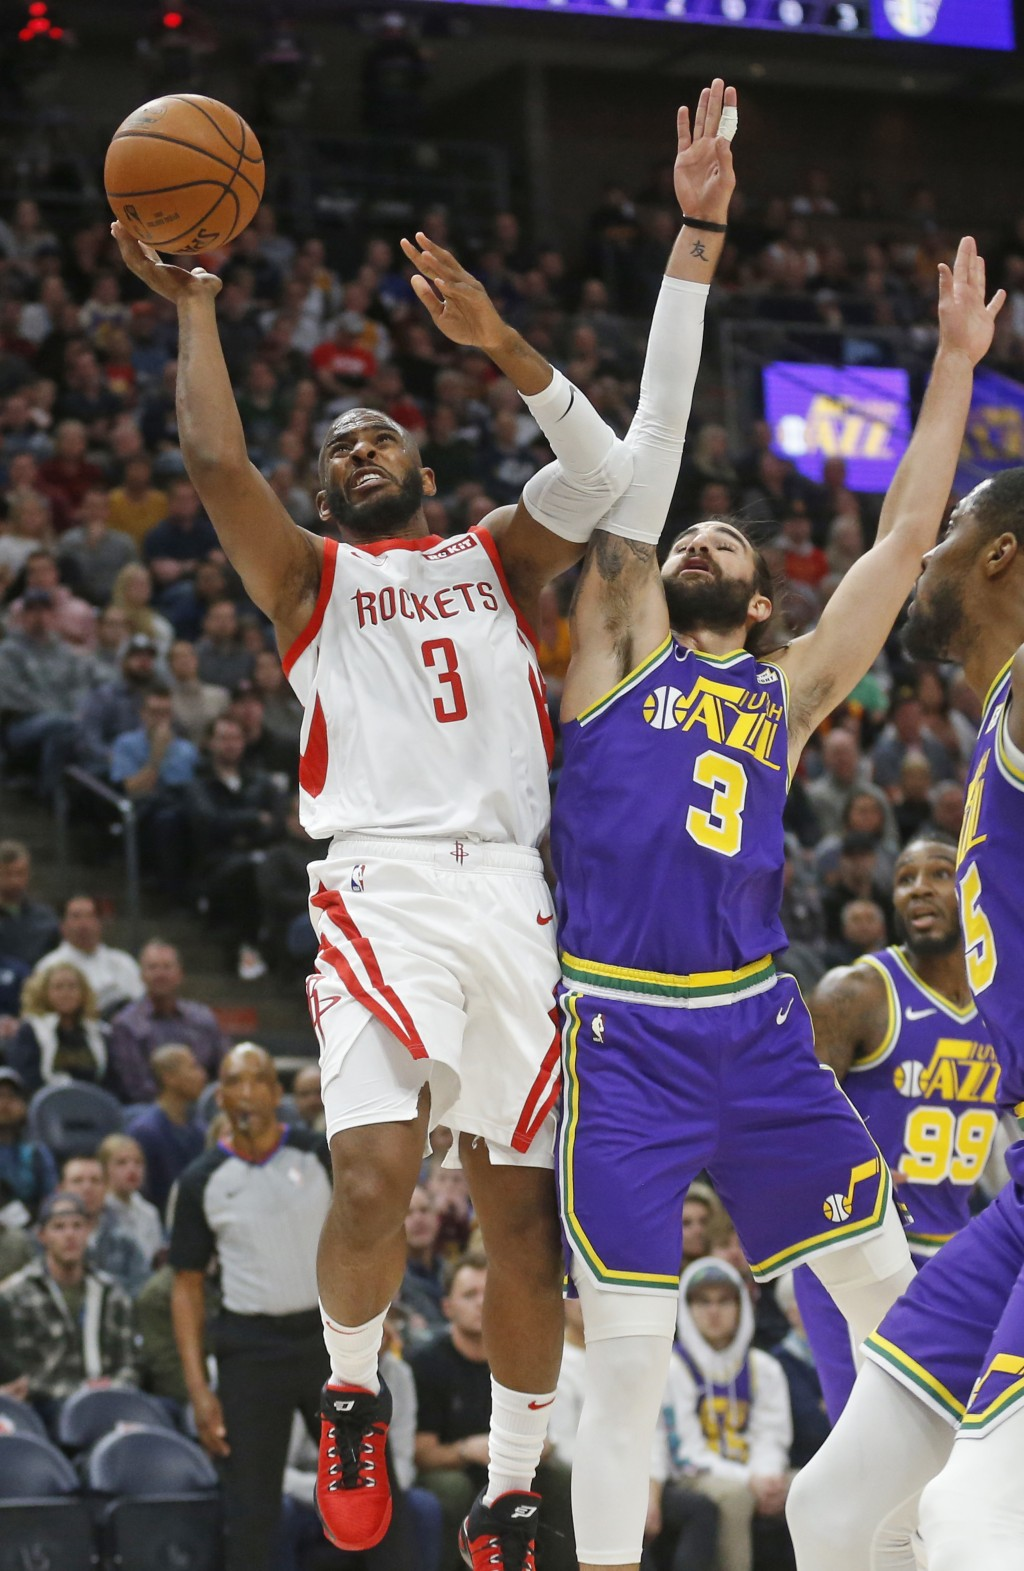 Houston Rockets guard Chris Paul (3) goes to the basket as Utah Jazz guard Ricky Rubio (3) defends in the first half during an NBA basketball game Thu